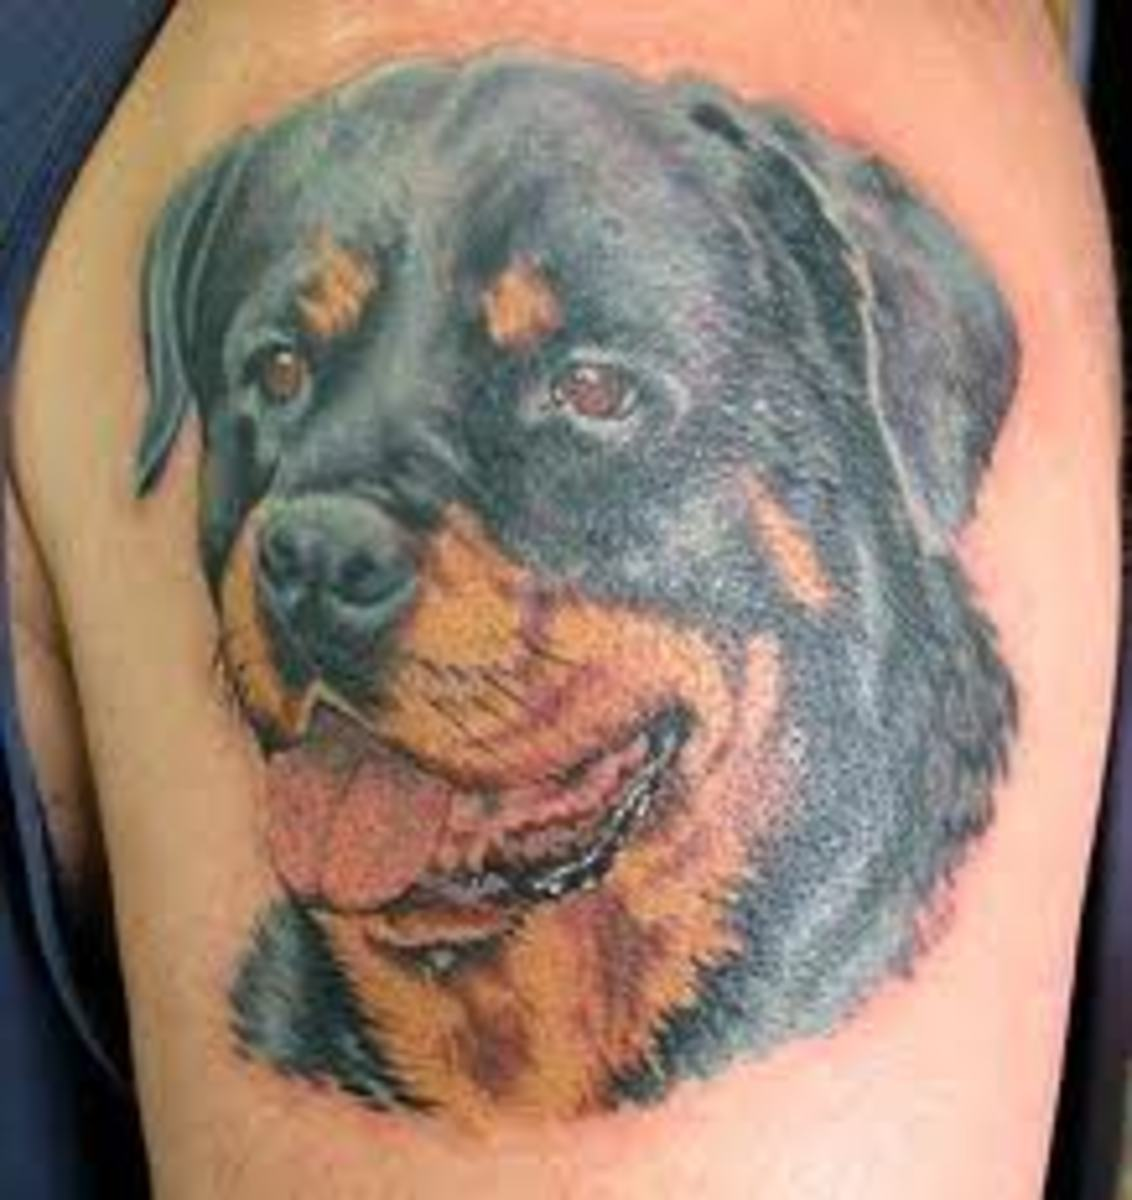 Tattoo Designs Tattoo Pictures: Rottweiler Tattoos And Meanings; Rottweiler Tattoo Designs